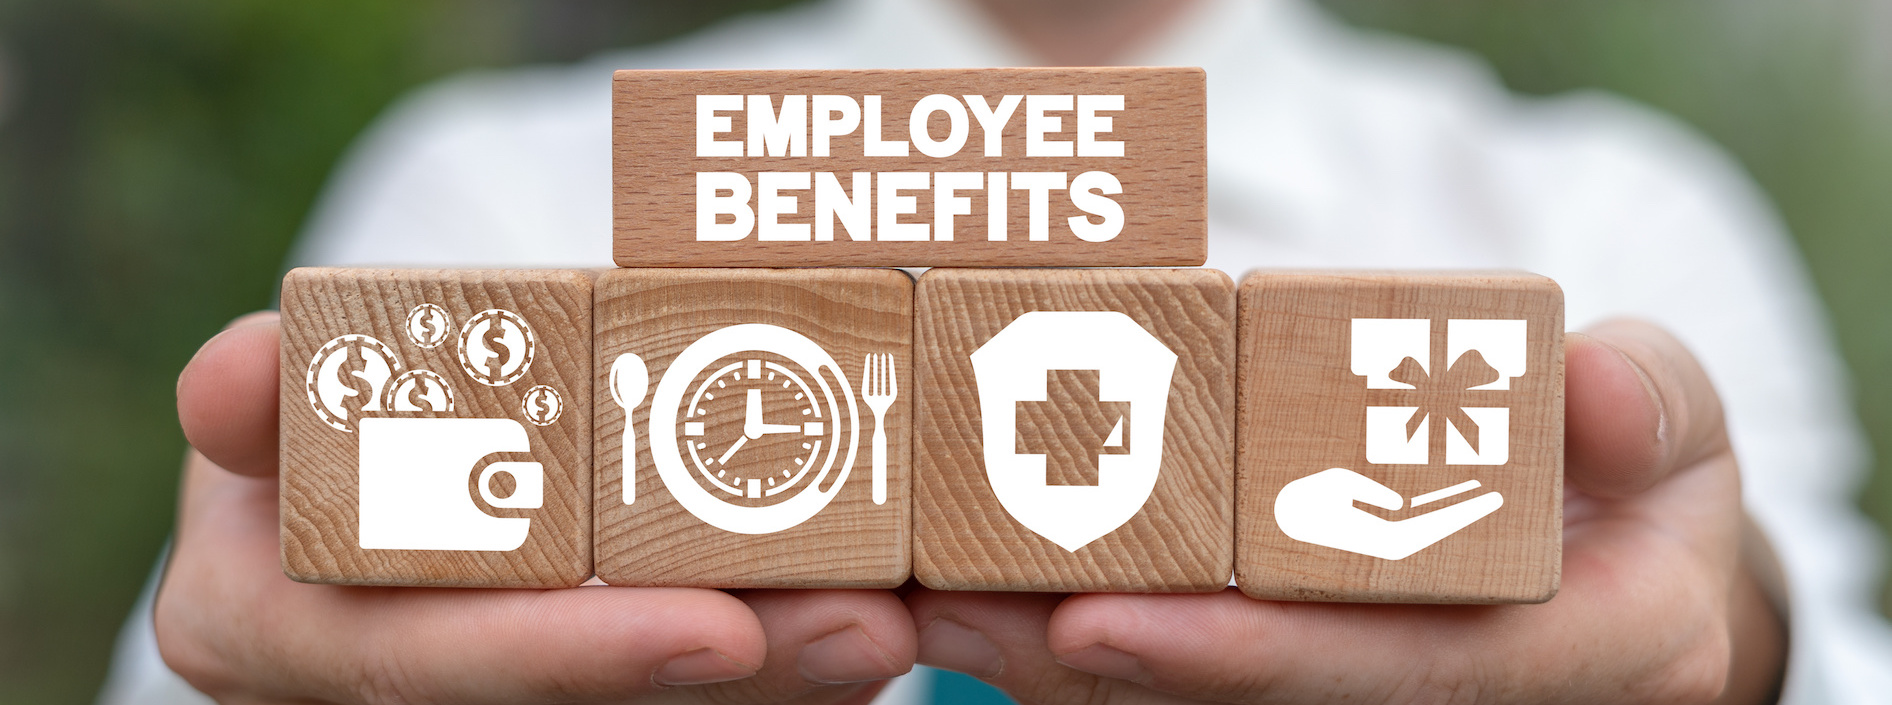 How to Afford Employee Benefits as a Startup